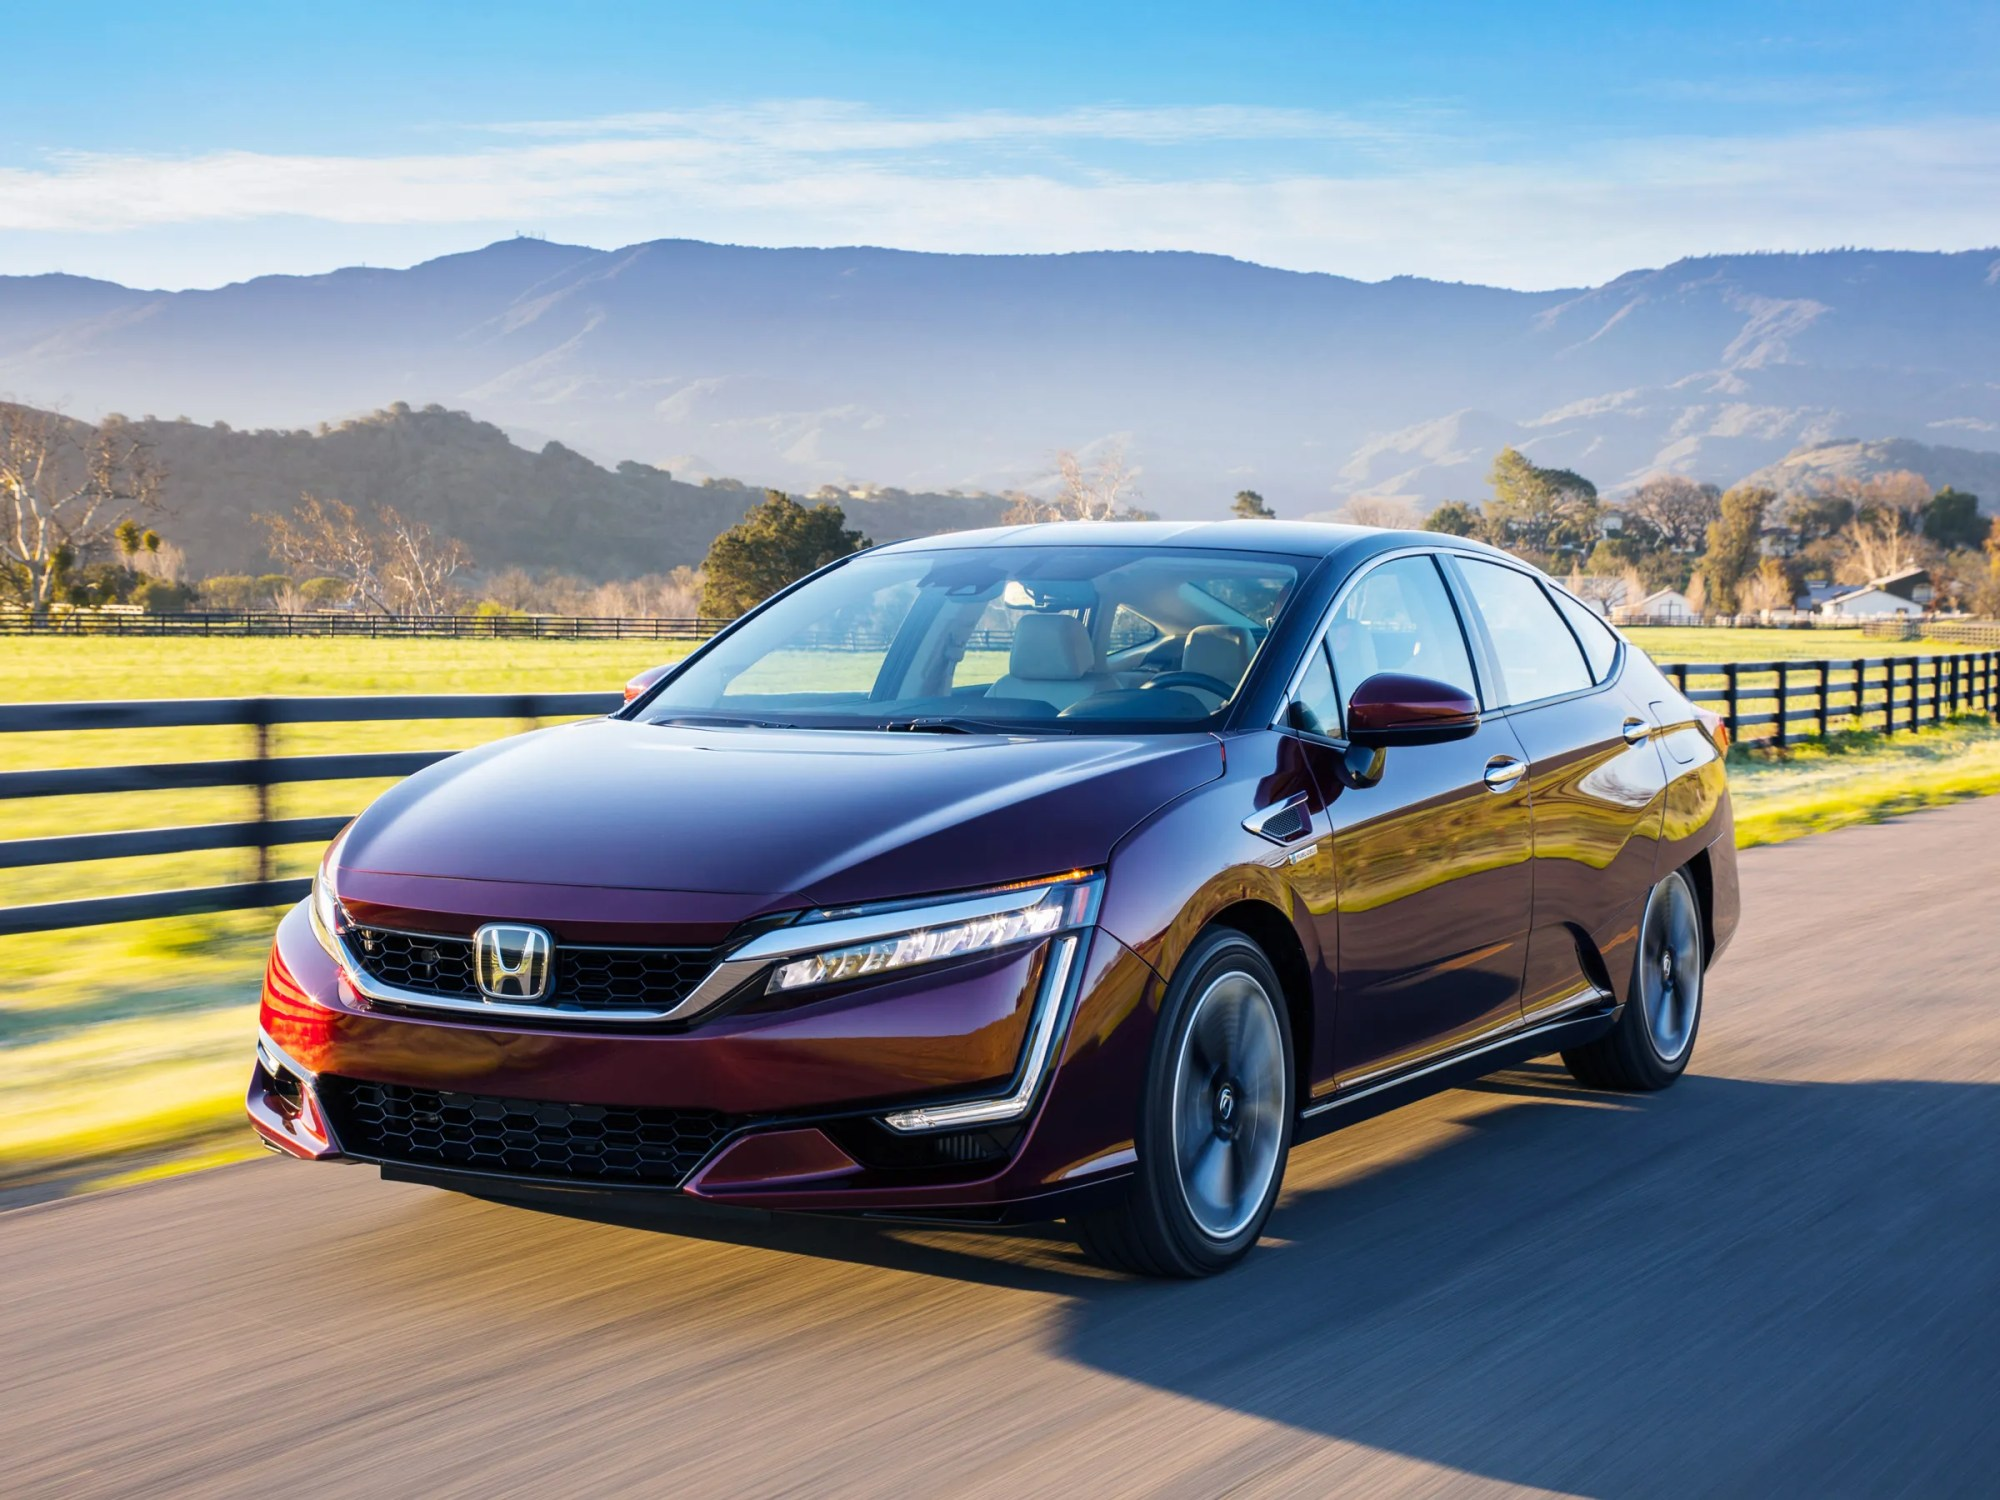 hight resolution of honda will do nearly anything to get you in a hydrogen car